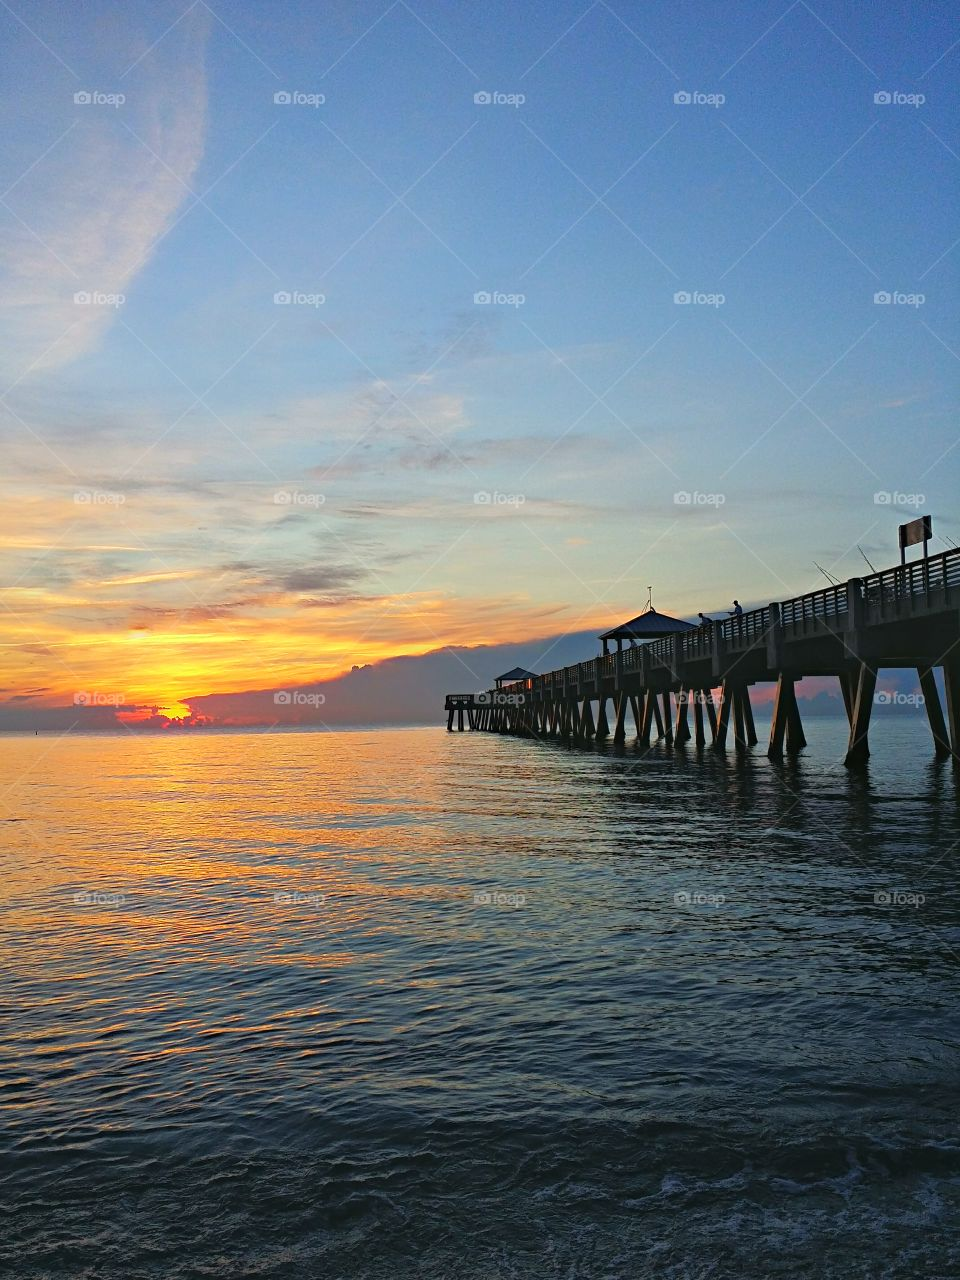 Sunrise at the Pier. Beautiful sunrise promises a great day!